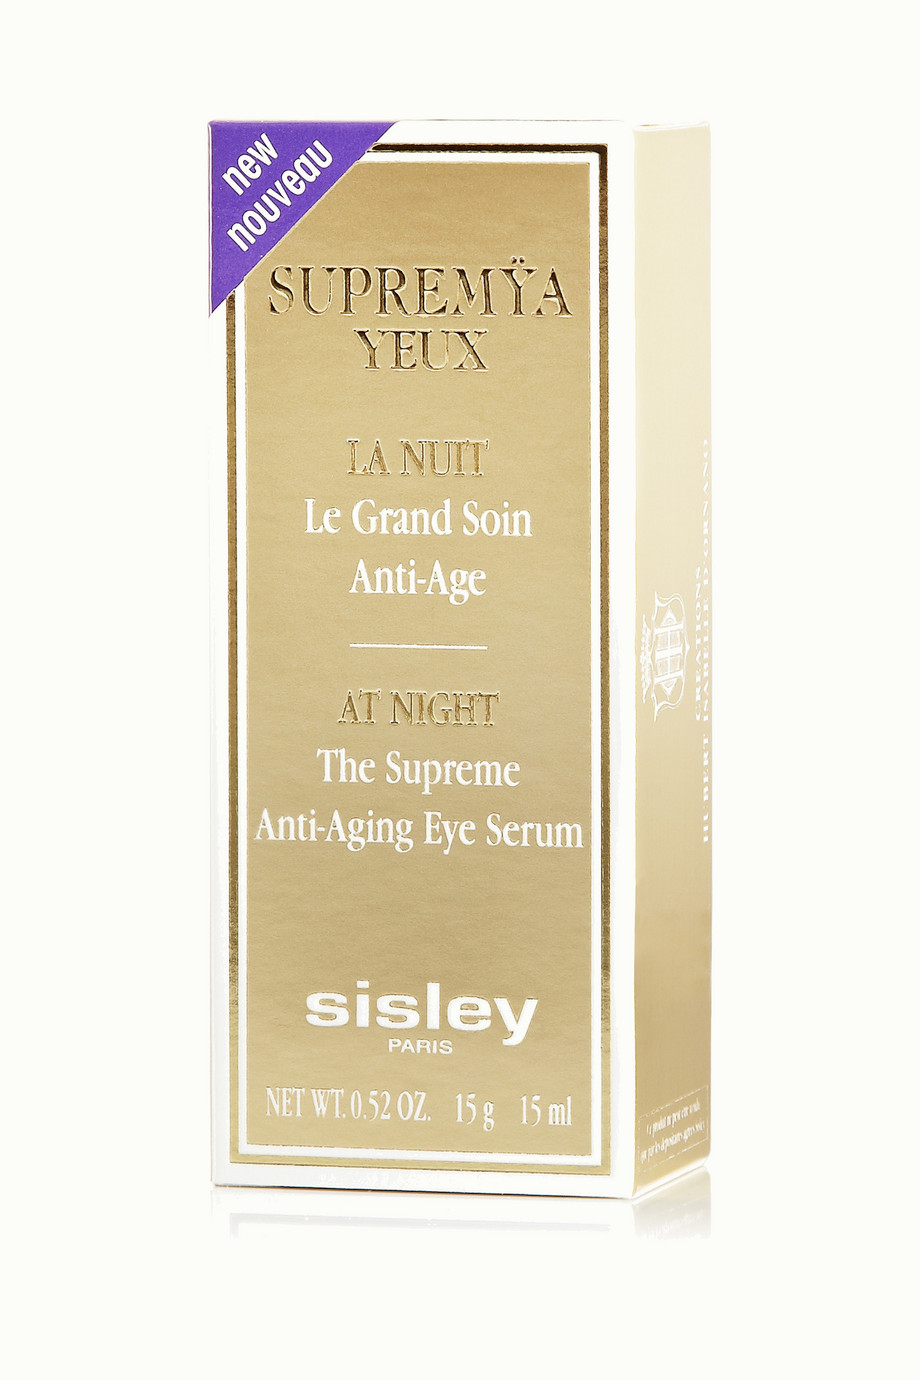 Sisley Supremÿa Eyes at Night - The Supreme Anti-Aging Eye Serum, 15ml